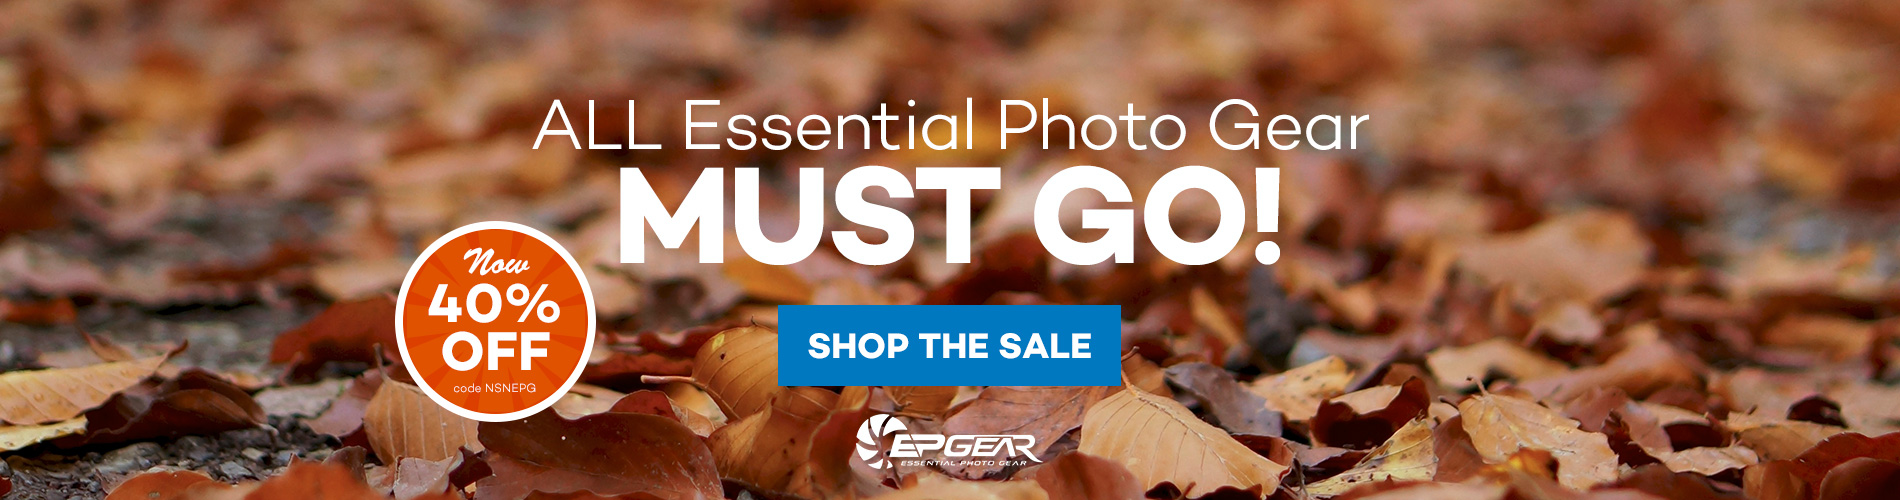 ALL Essential Photo Gear MUST GO! Now 40% off with code NSNEPG. Shop the Sale >>